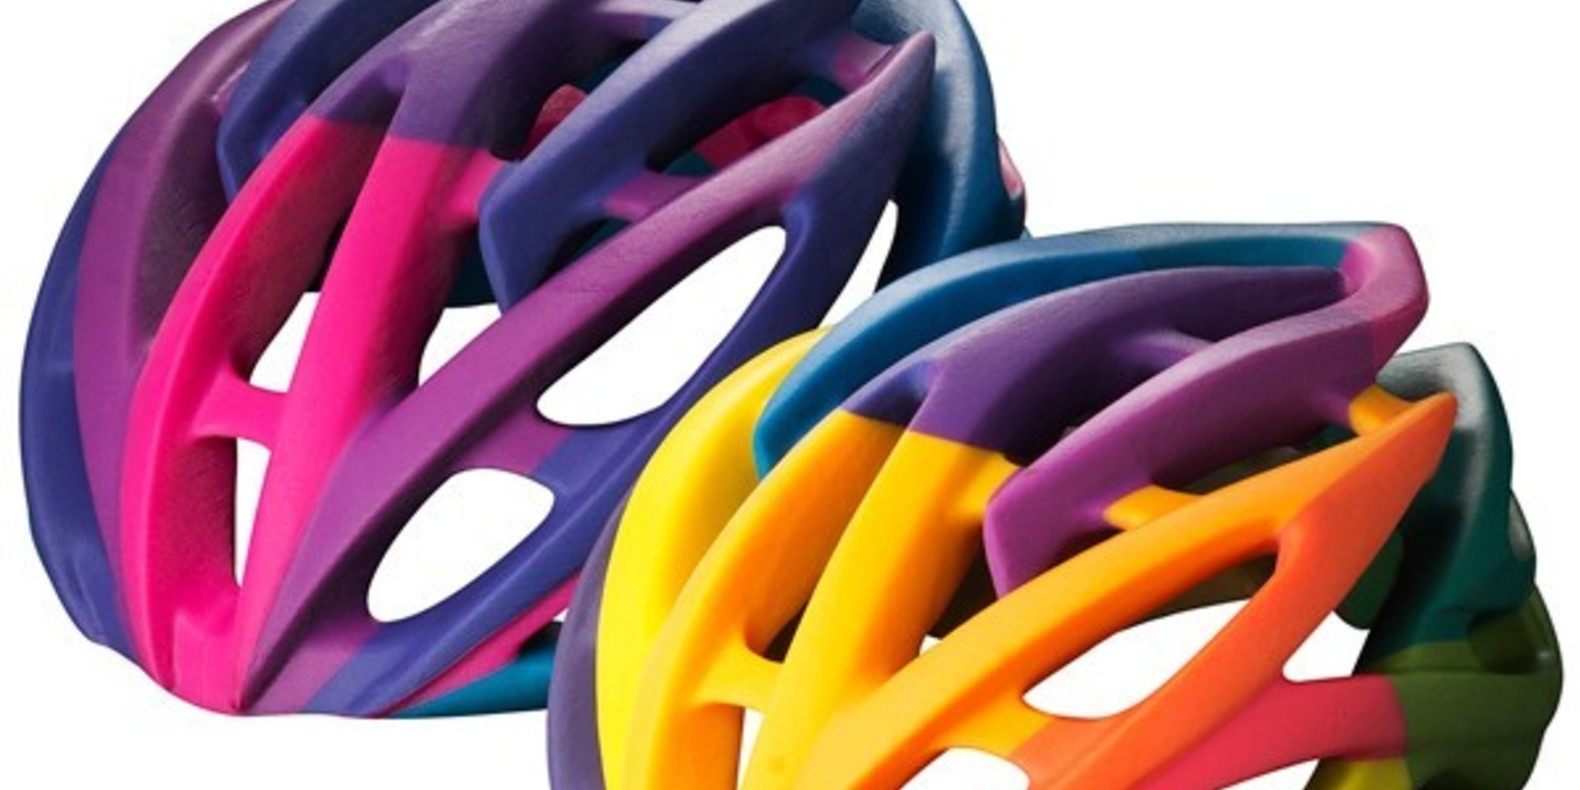 Le guide ultime de l'impression 3D en couleur